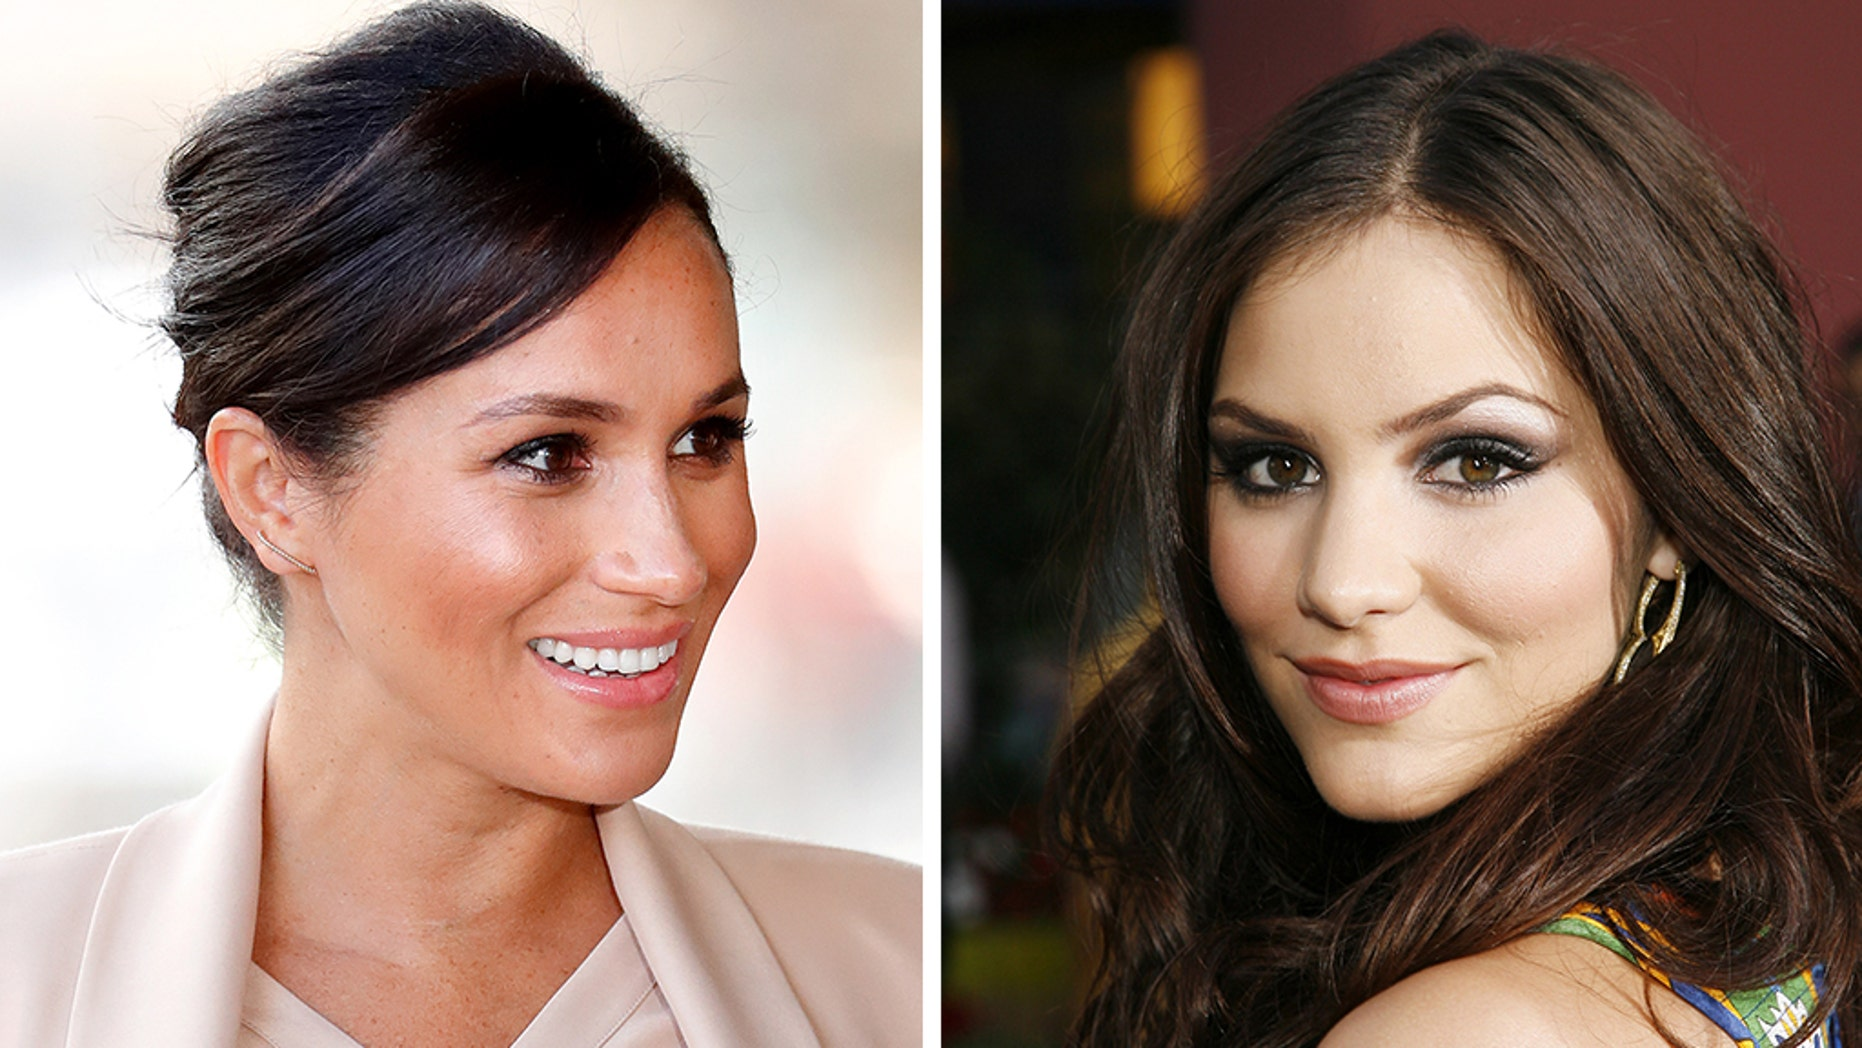 Katharine McPhee shared an epic throwback photo with Meghan Markle on Thursday.